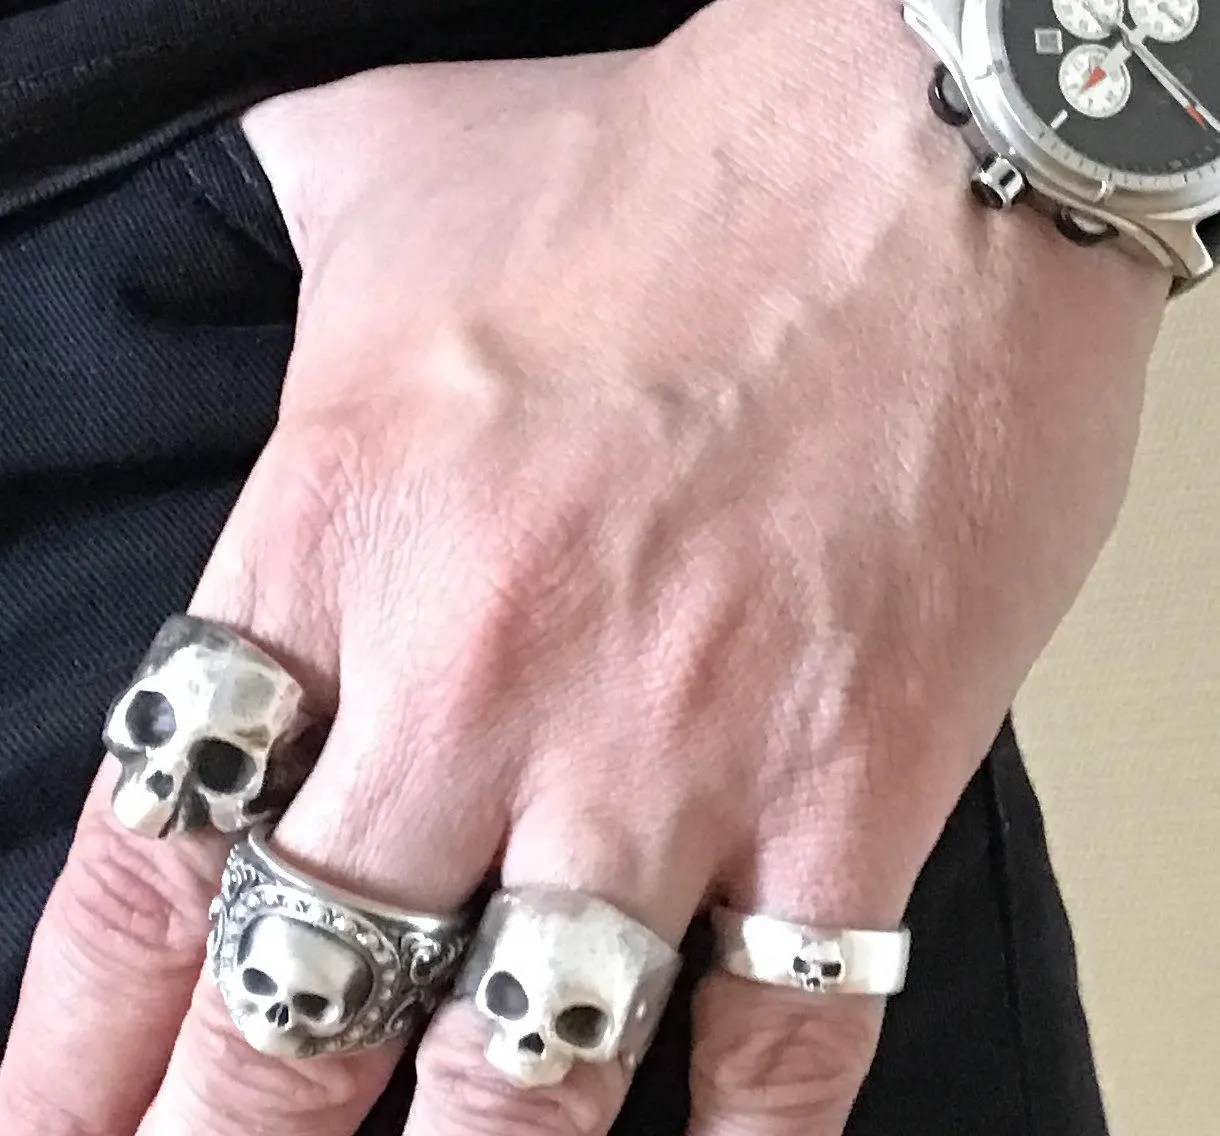 skull wedding ring grooms skull ring mens skull wedding rings Mens Skull Ring Sterling Wedding Band Wed Set All Sizes gallery photo gallery photo gallery photo gallery photo gallery photo